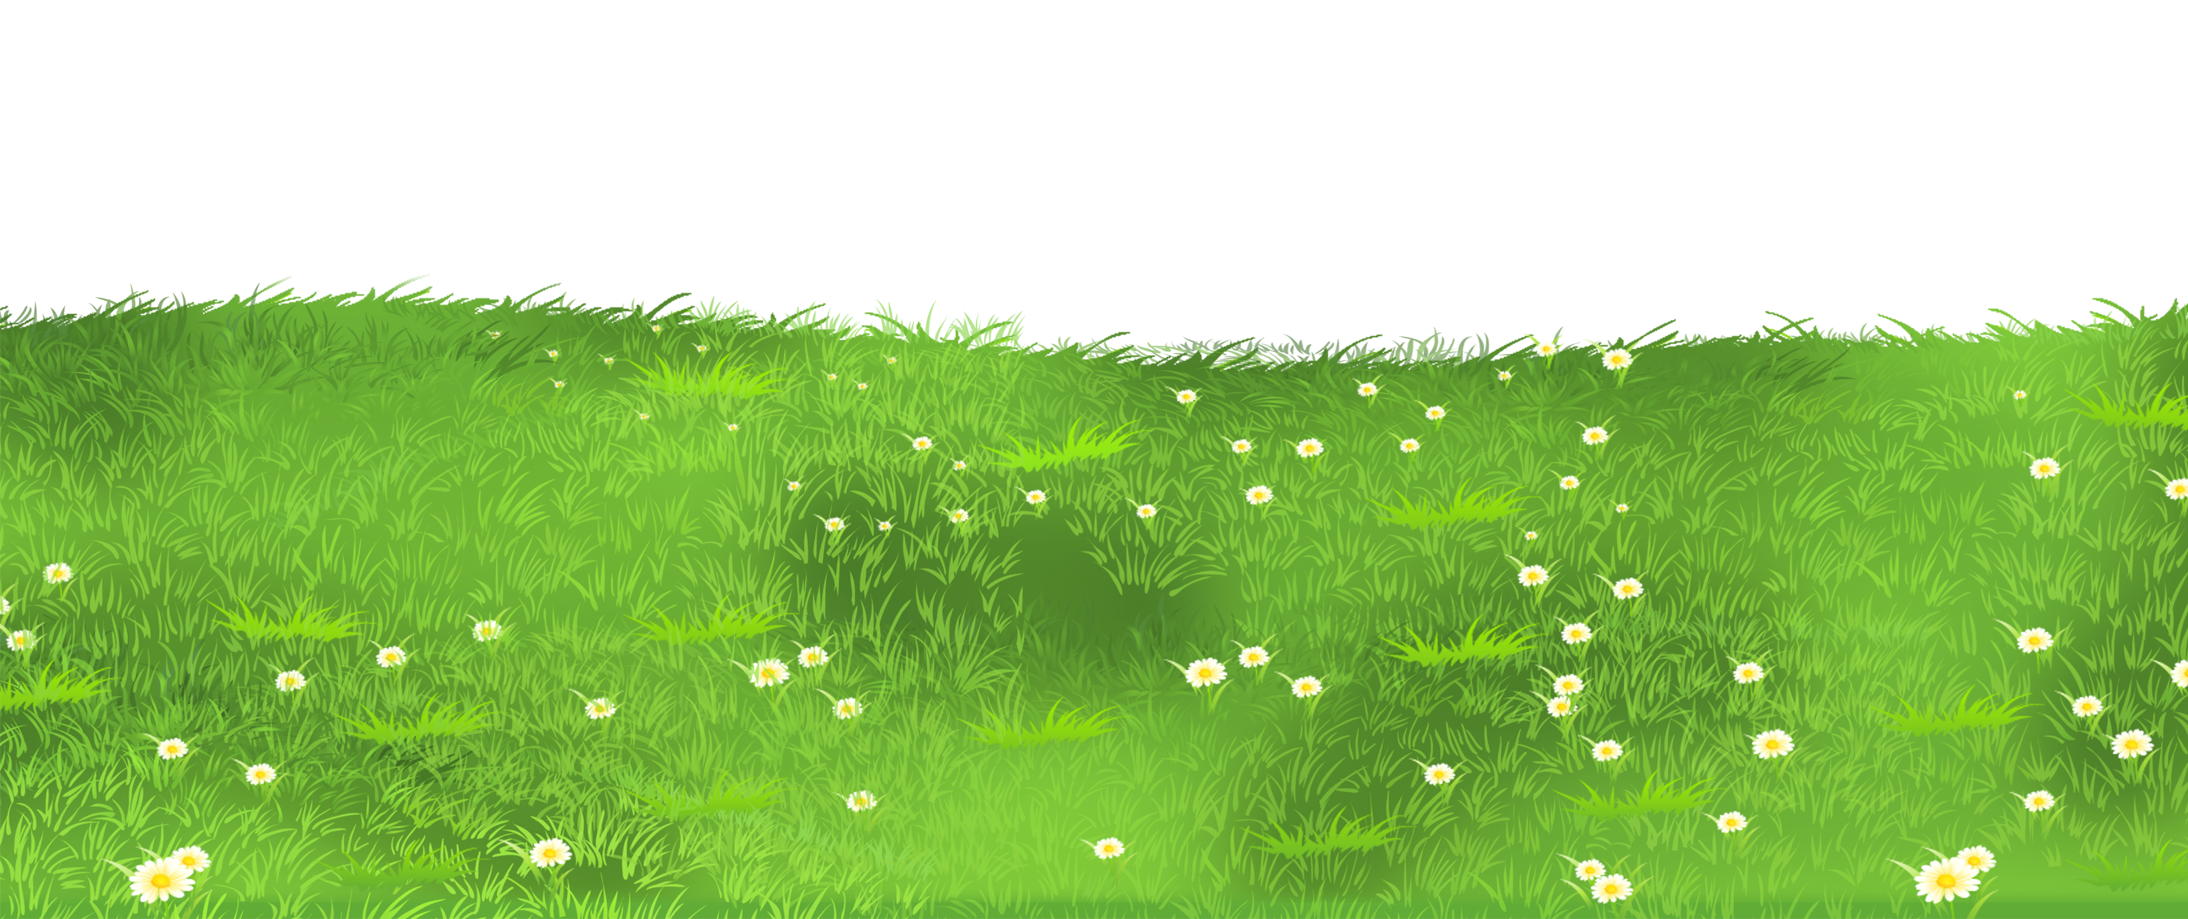 Free Grass Field Cliparts, Download Free Clip Art, Free Clip Art on ... image library